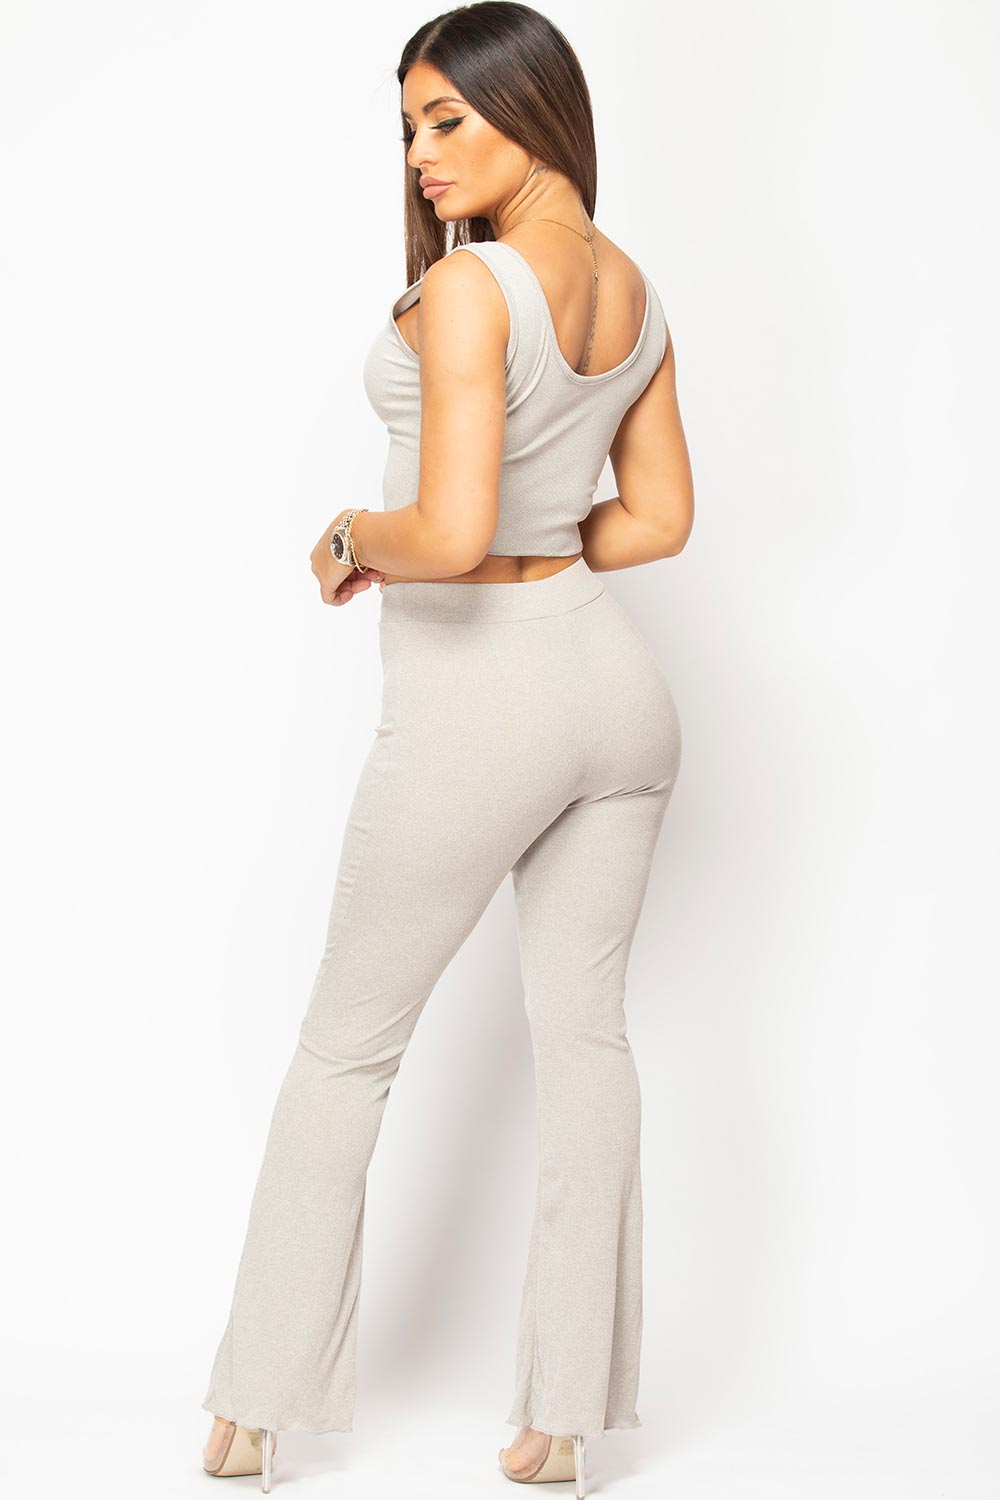 grey crop top and wide leg trousers set